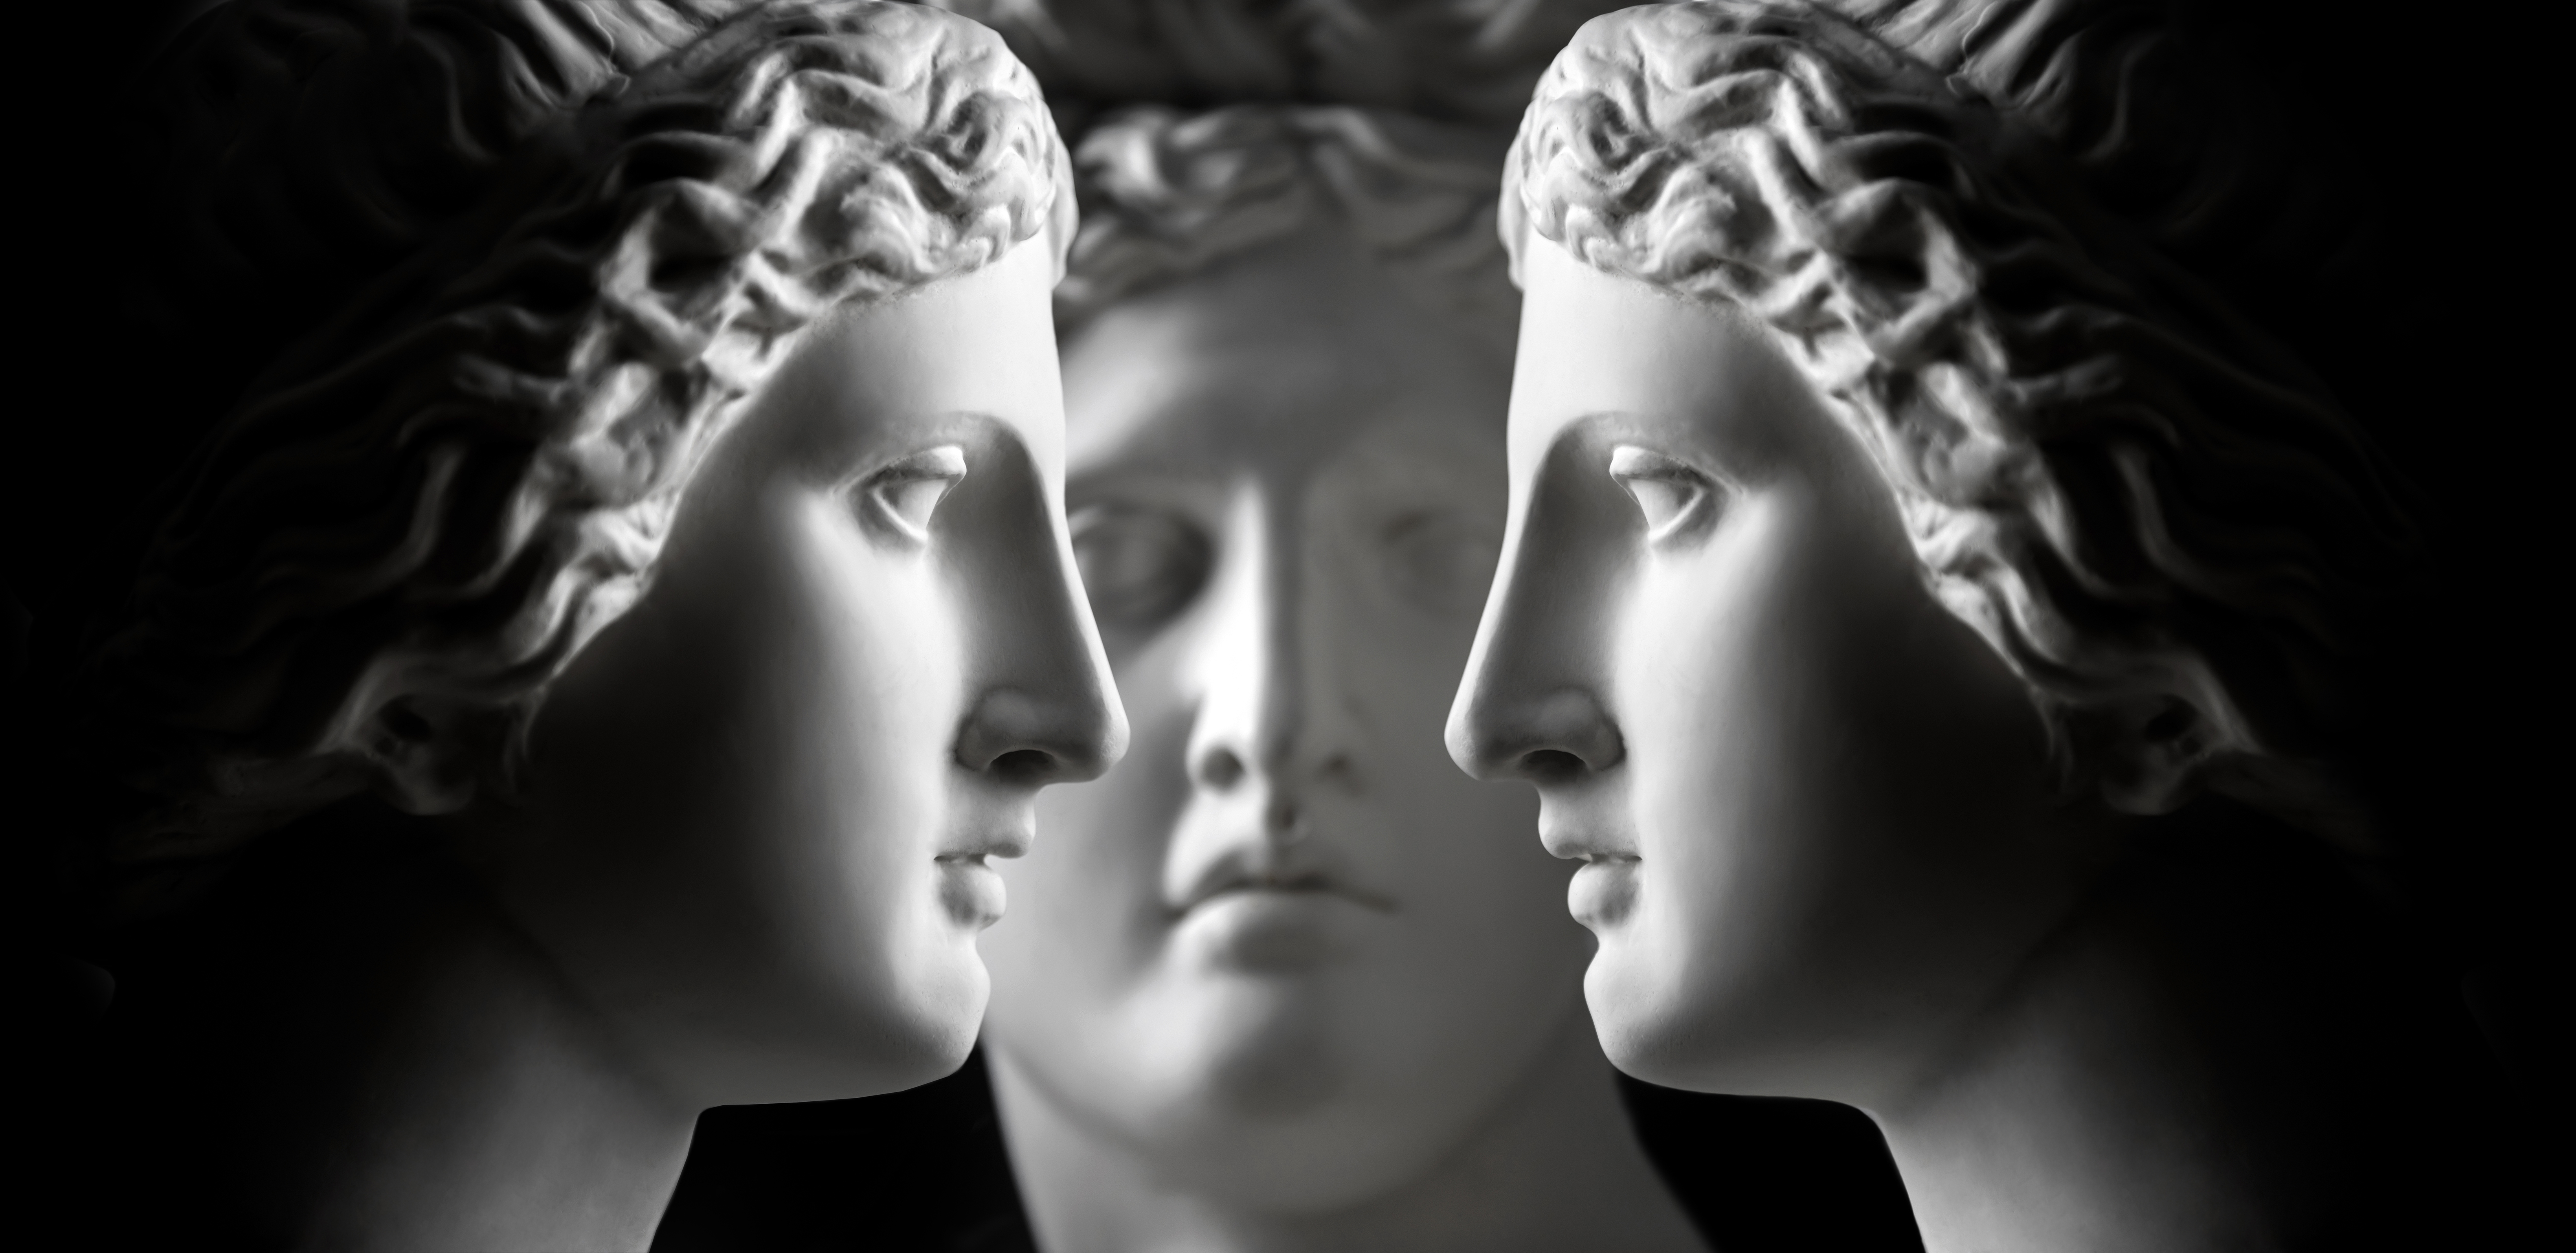 Three marble statue heads (two of Aphrodite and one of Apollo) face each other